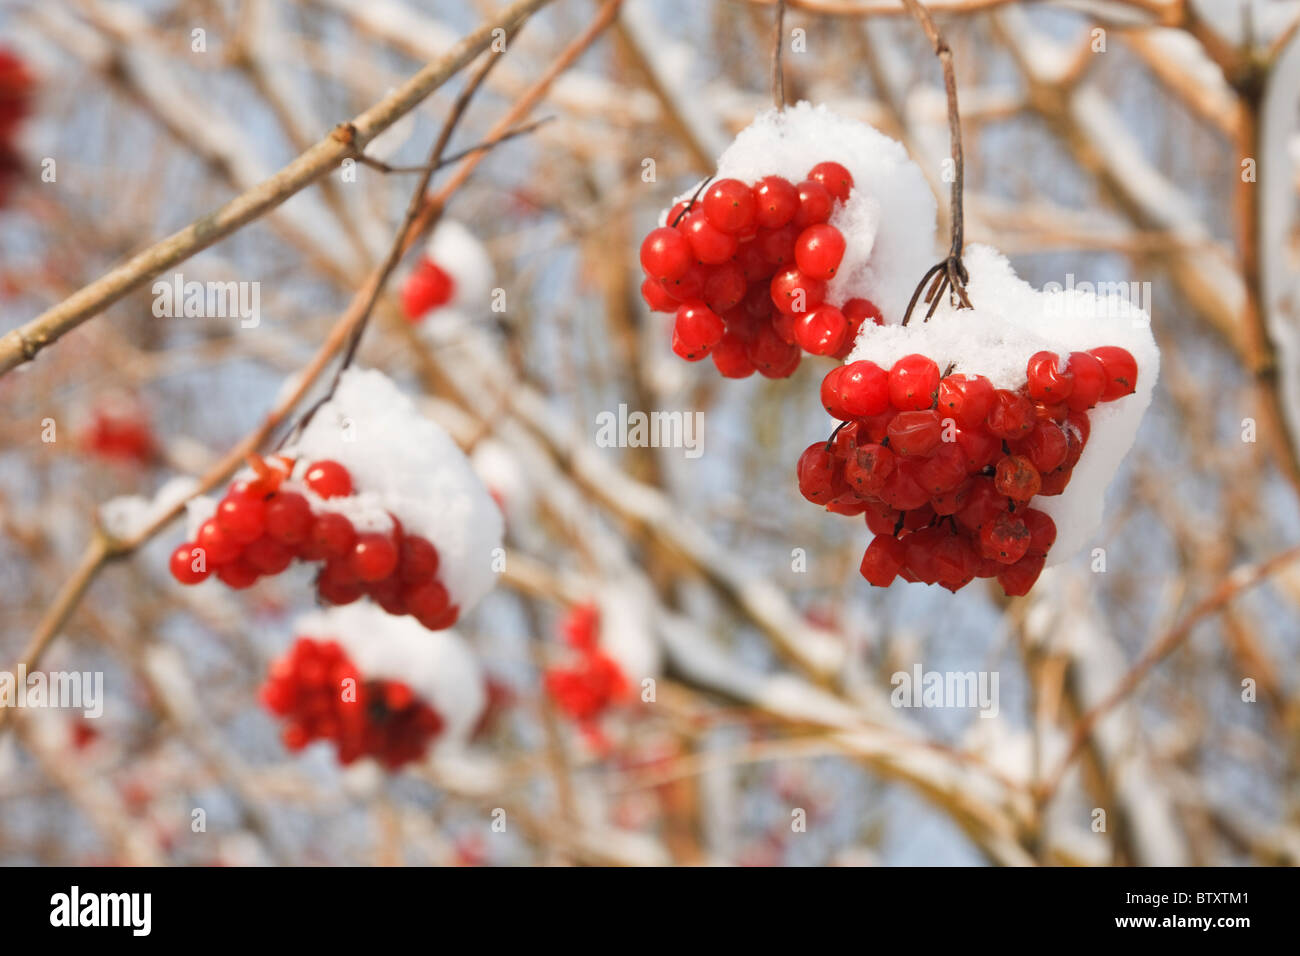 Red Berries Of Rowan Tree Or Mountain Ash Sorbus Aucuparia With